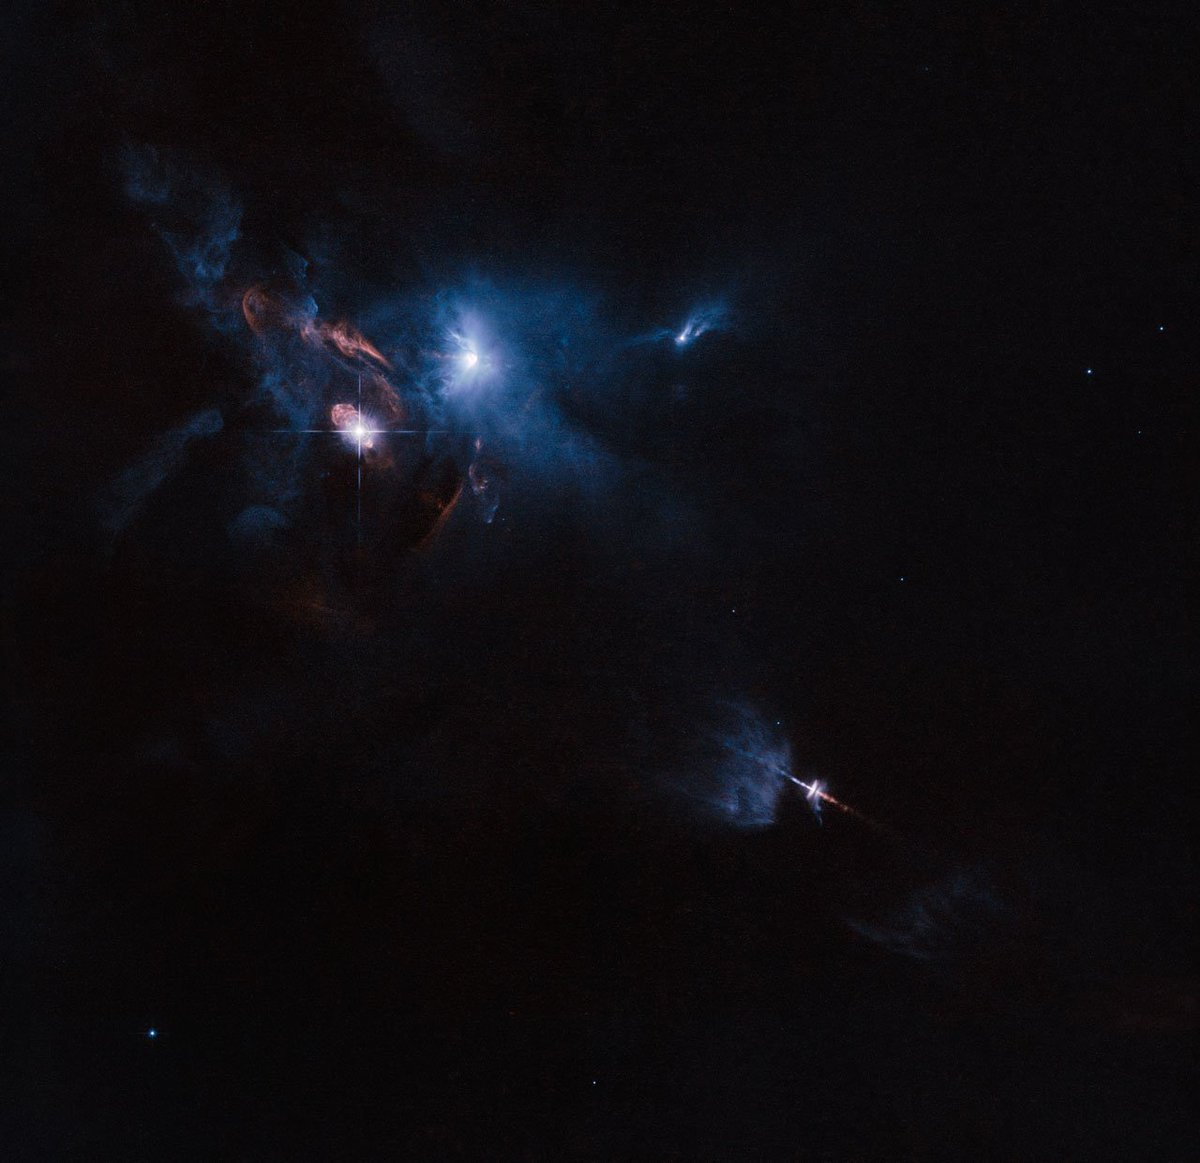 #TBT A striking view snapped by Hubble of a multiple star system called XZ Tauri, its neighbour HL Tauri and several nearby young stellar objects. Credit: @esa / @HUBBLE_space / @NASA Acknowledgement: Judy Schmidt  https://t.co/cSfpRsEGL5